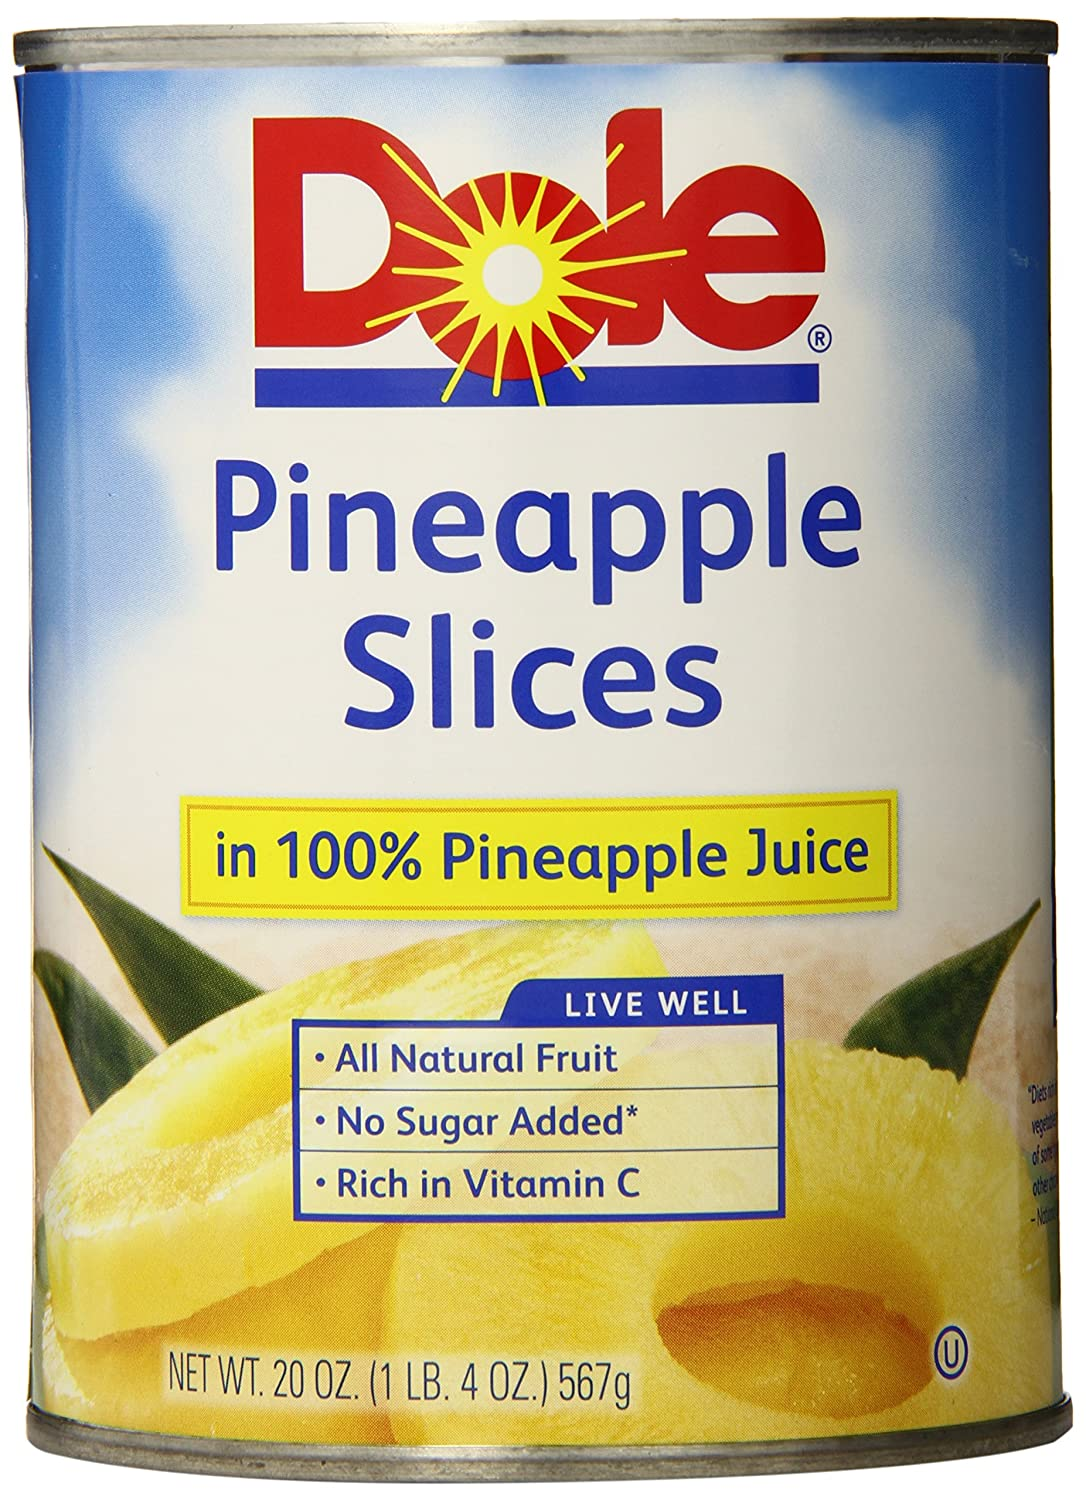 Is Dole Pineapple Slices Gluten Free Dole Pineapple S...